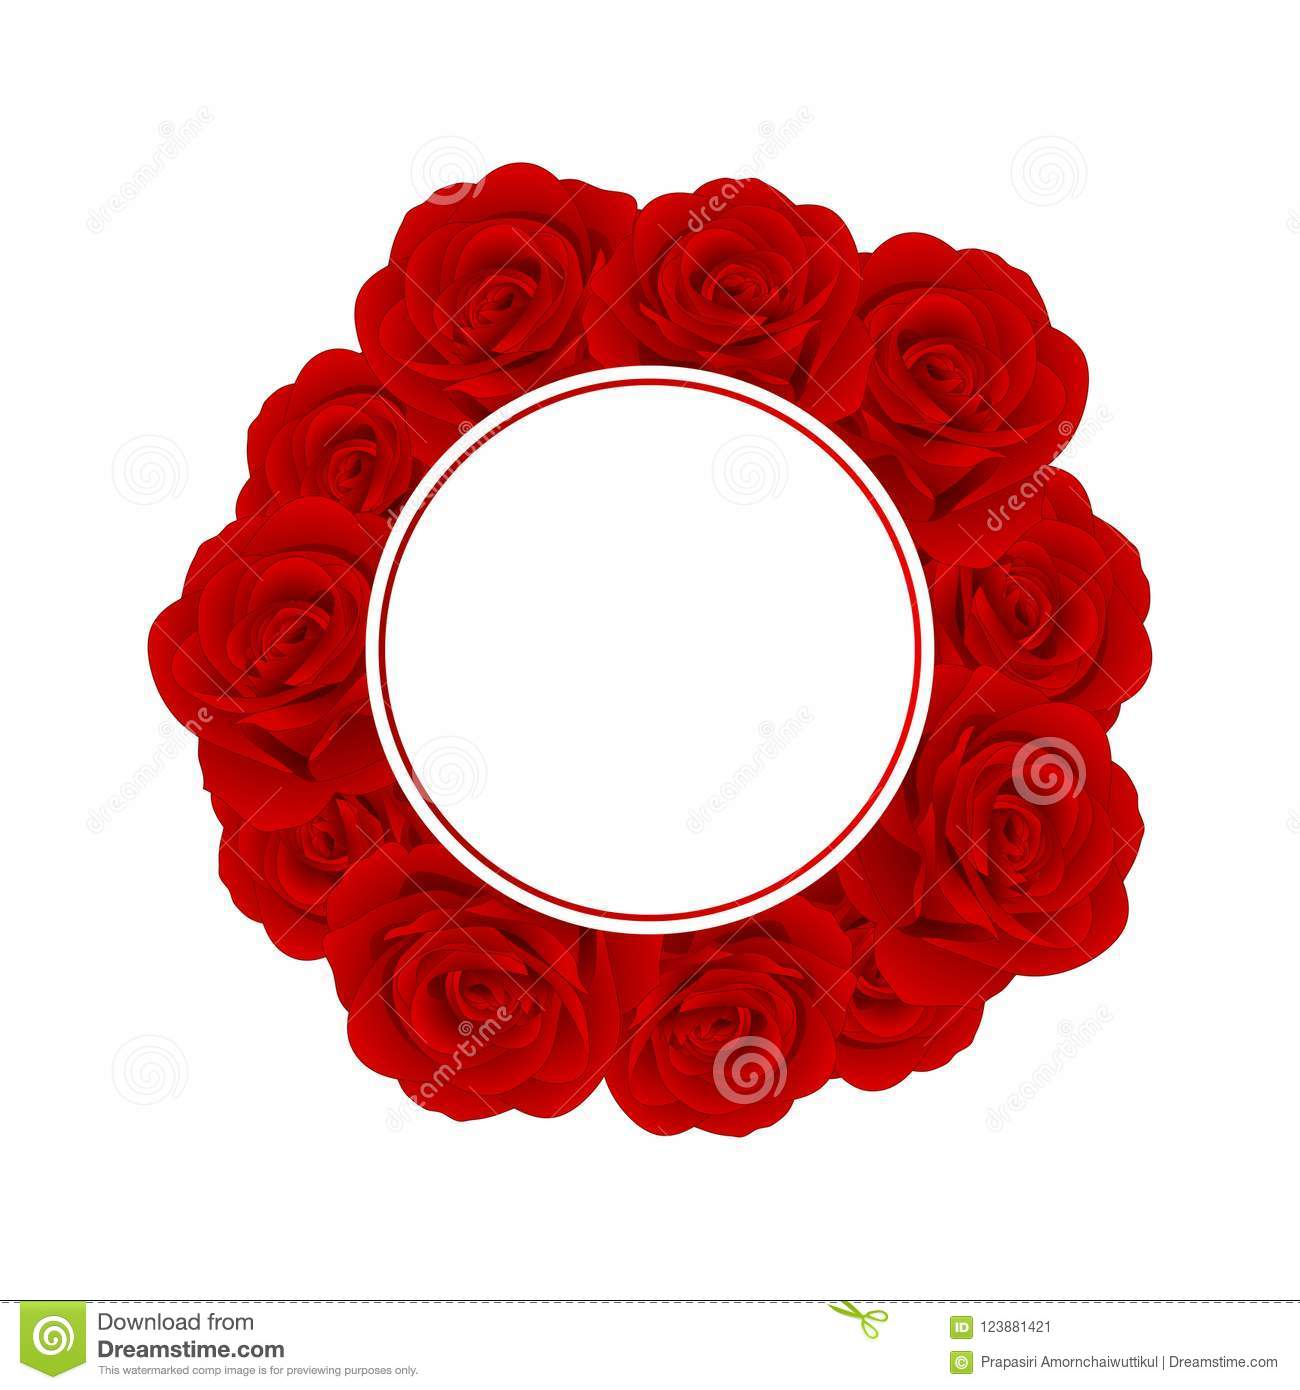 Beautiful Red Rose Banner Wreath - Rosa isolated on White Background. Valentine Day. Vector Illustration